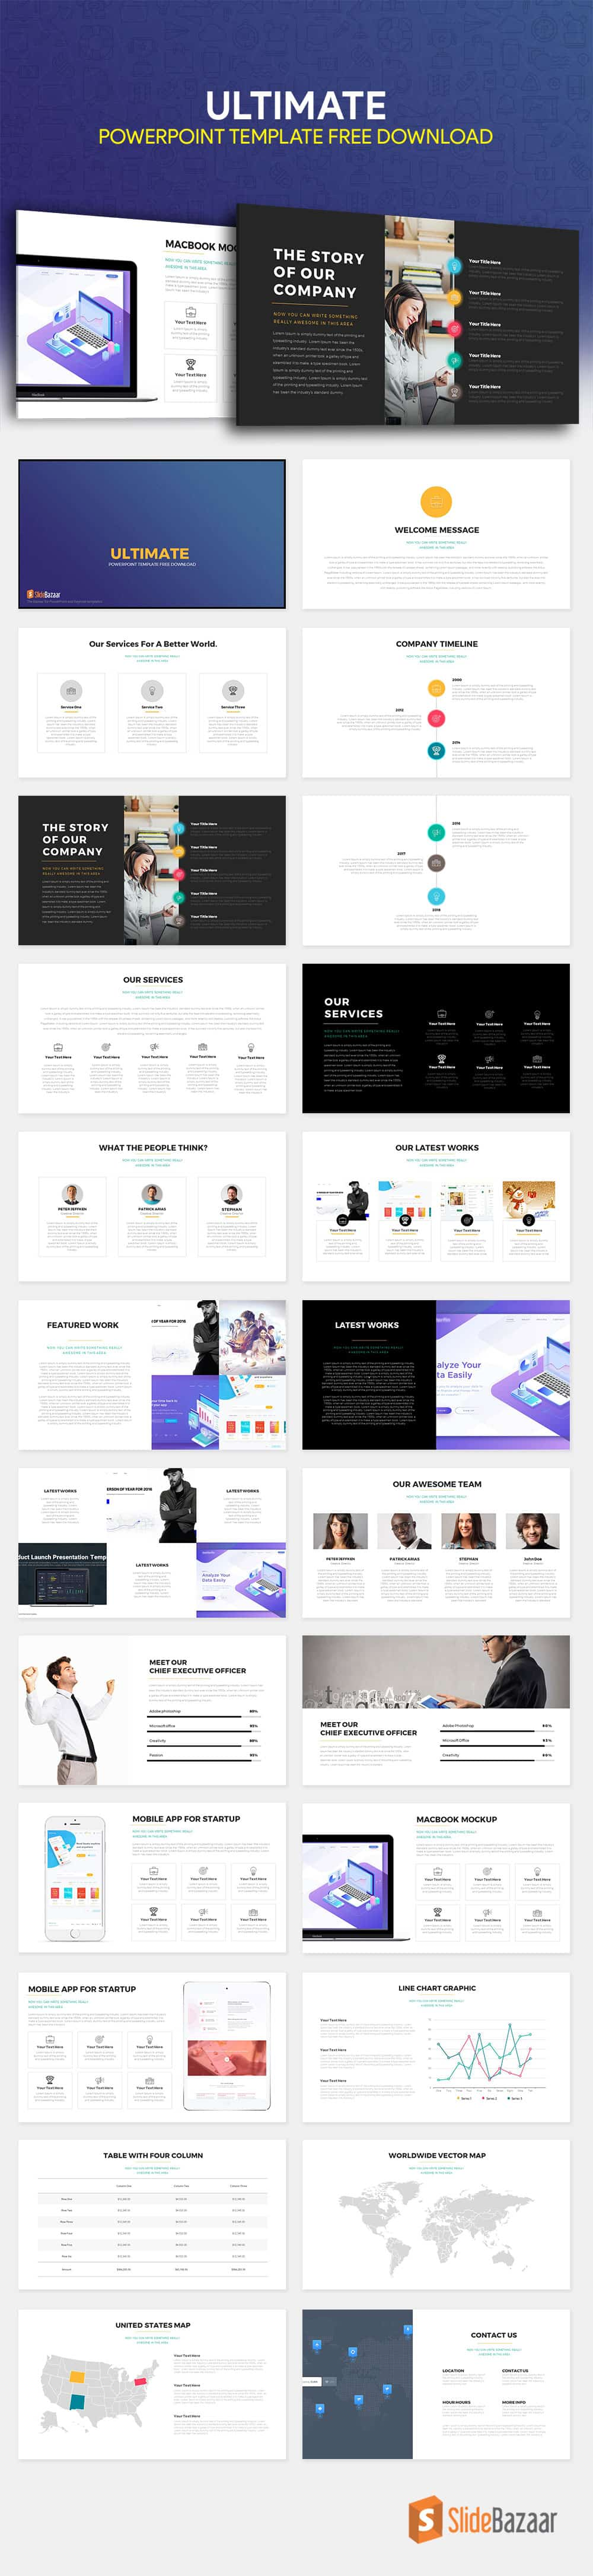 Ultimate free powerpoint template download slidebazaar ultimate free powerpoint template download toneelgroepblik Gallery